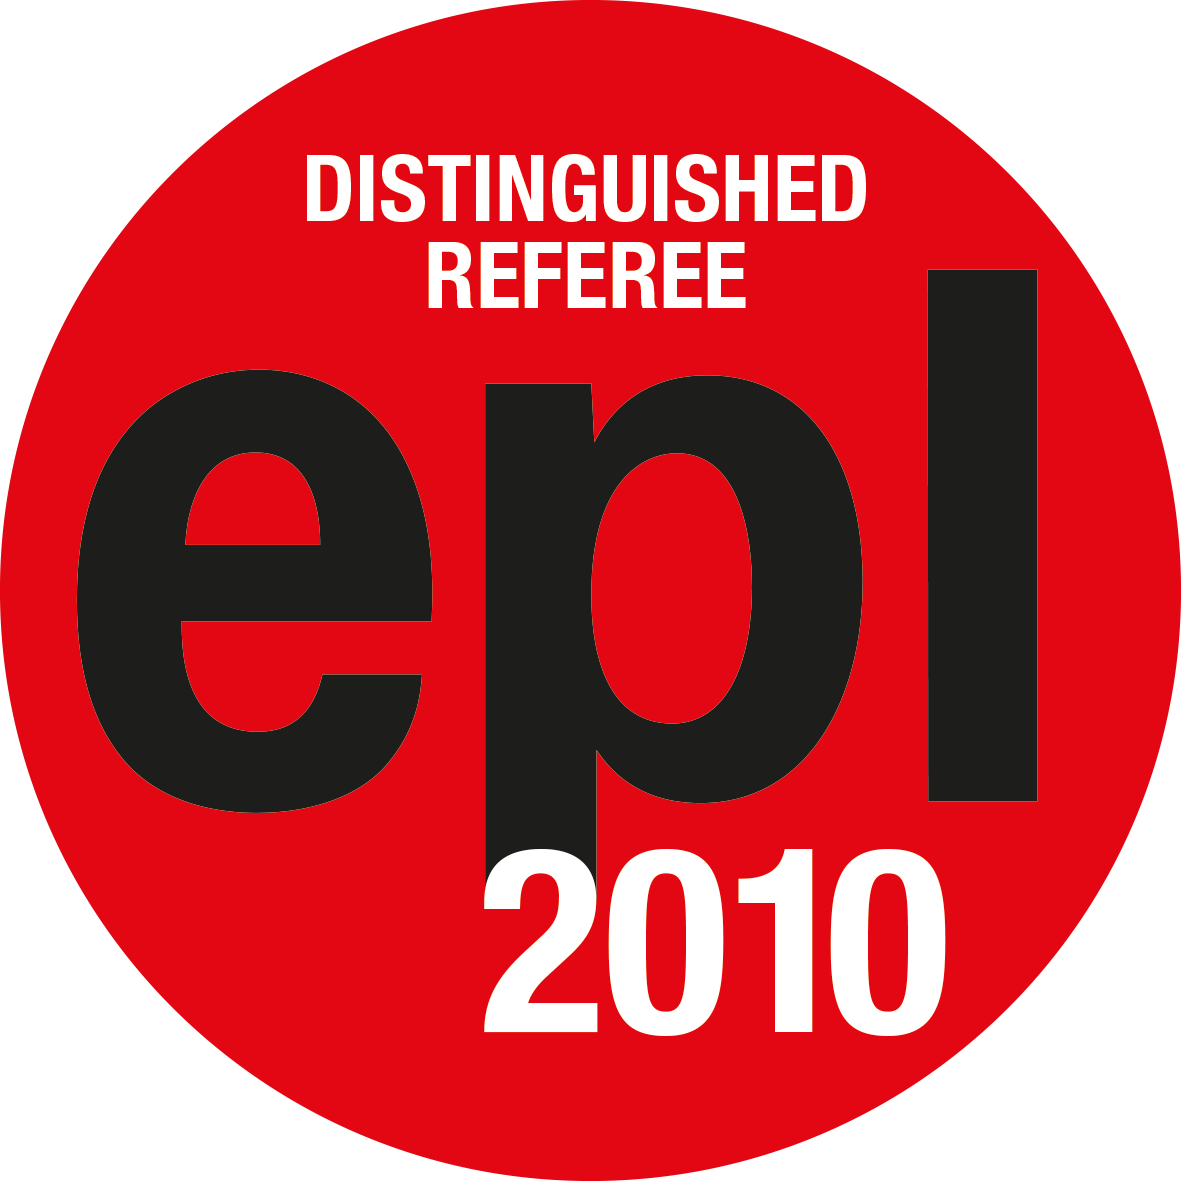 EPL Distinguished Referees 2010